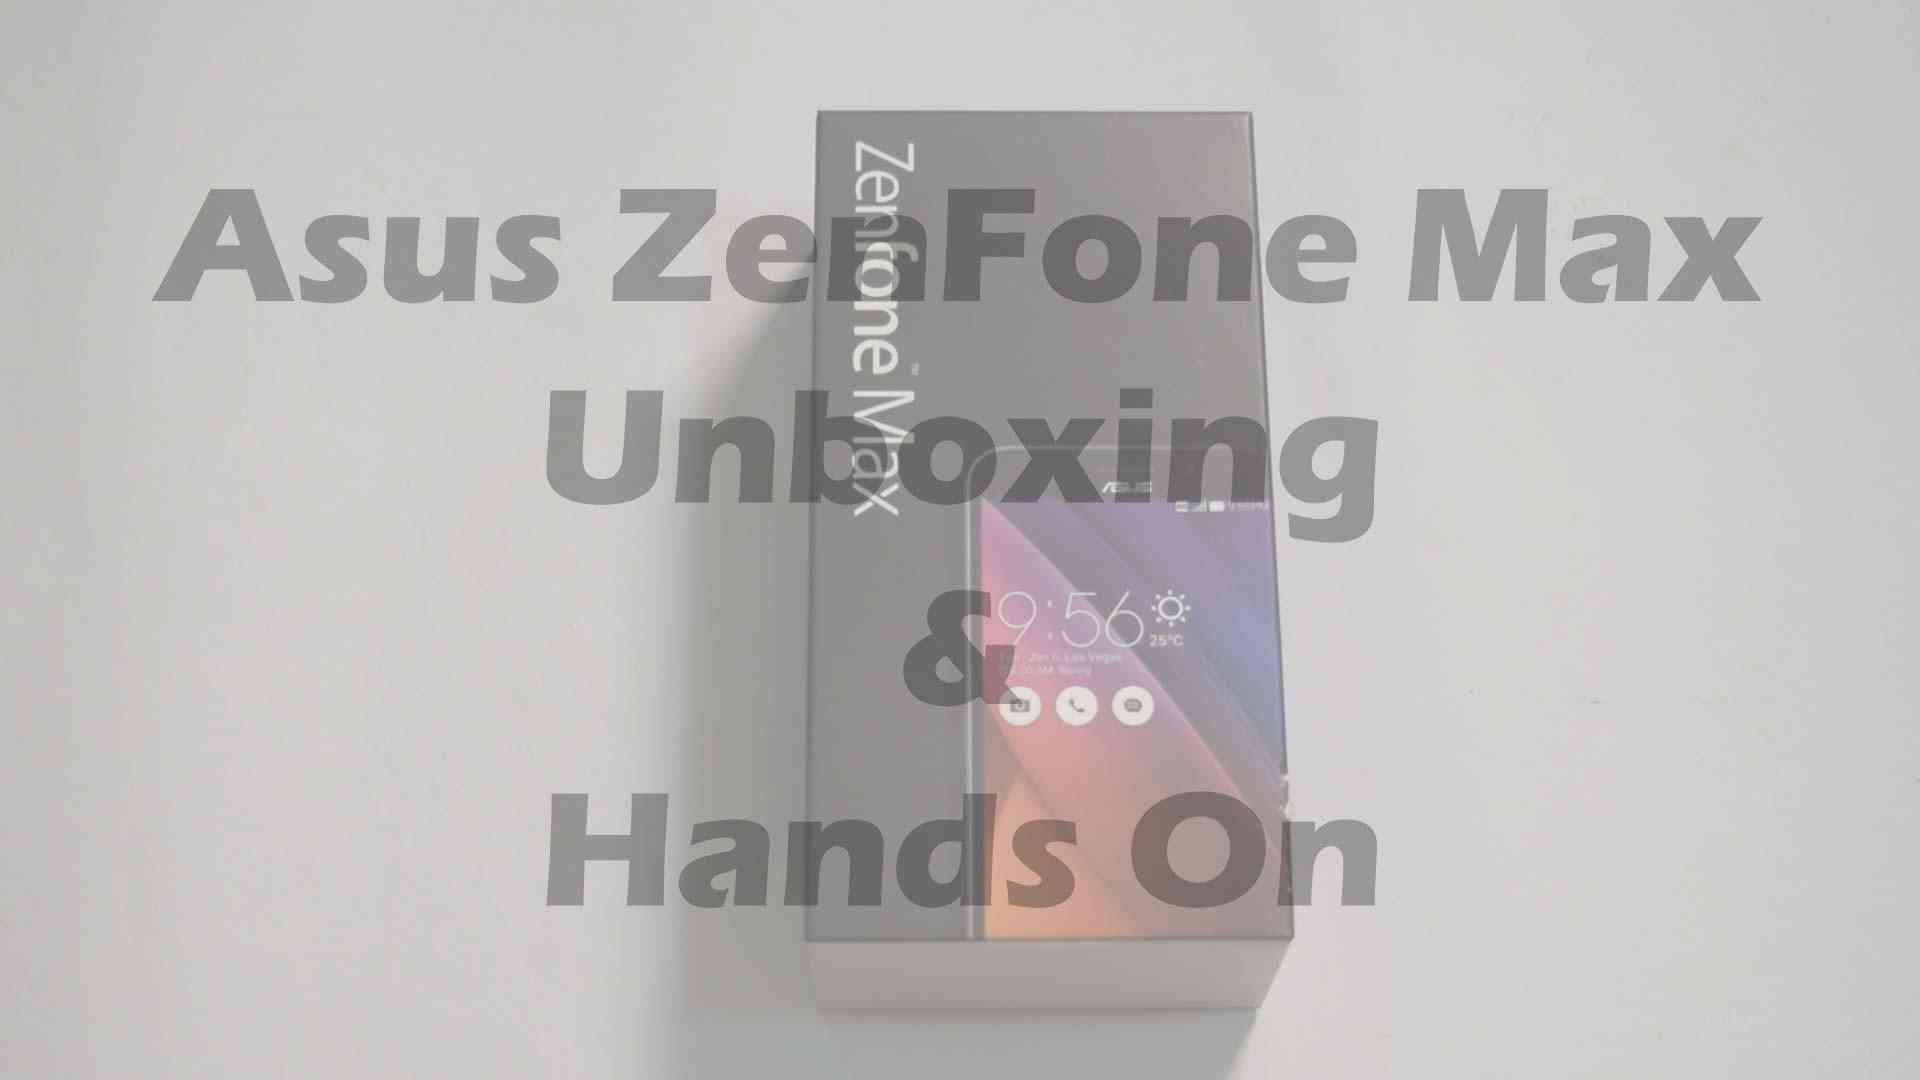 Asus ZenFone Max Unboxing and Hands On